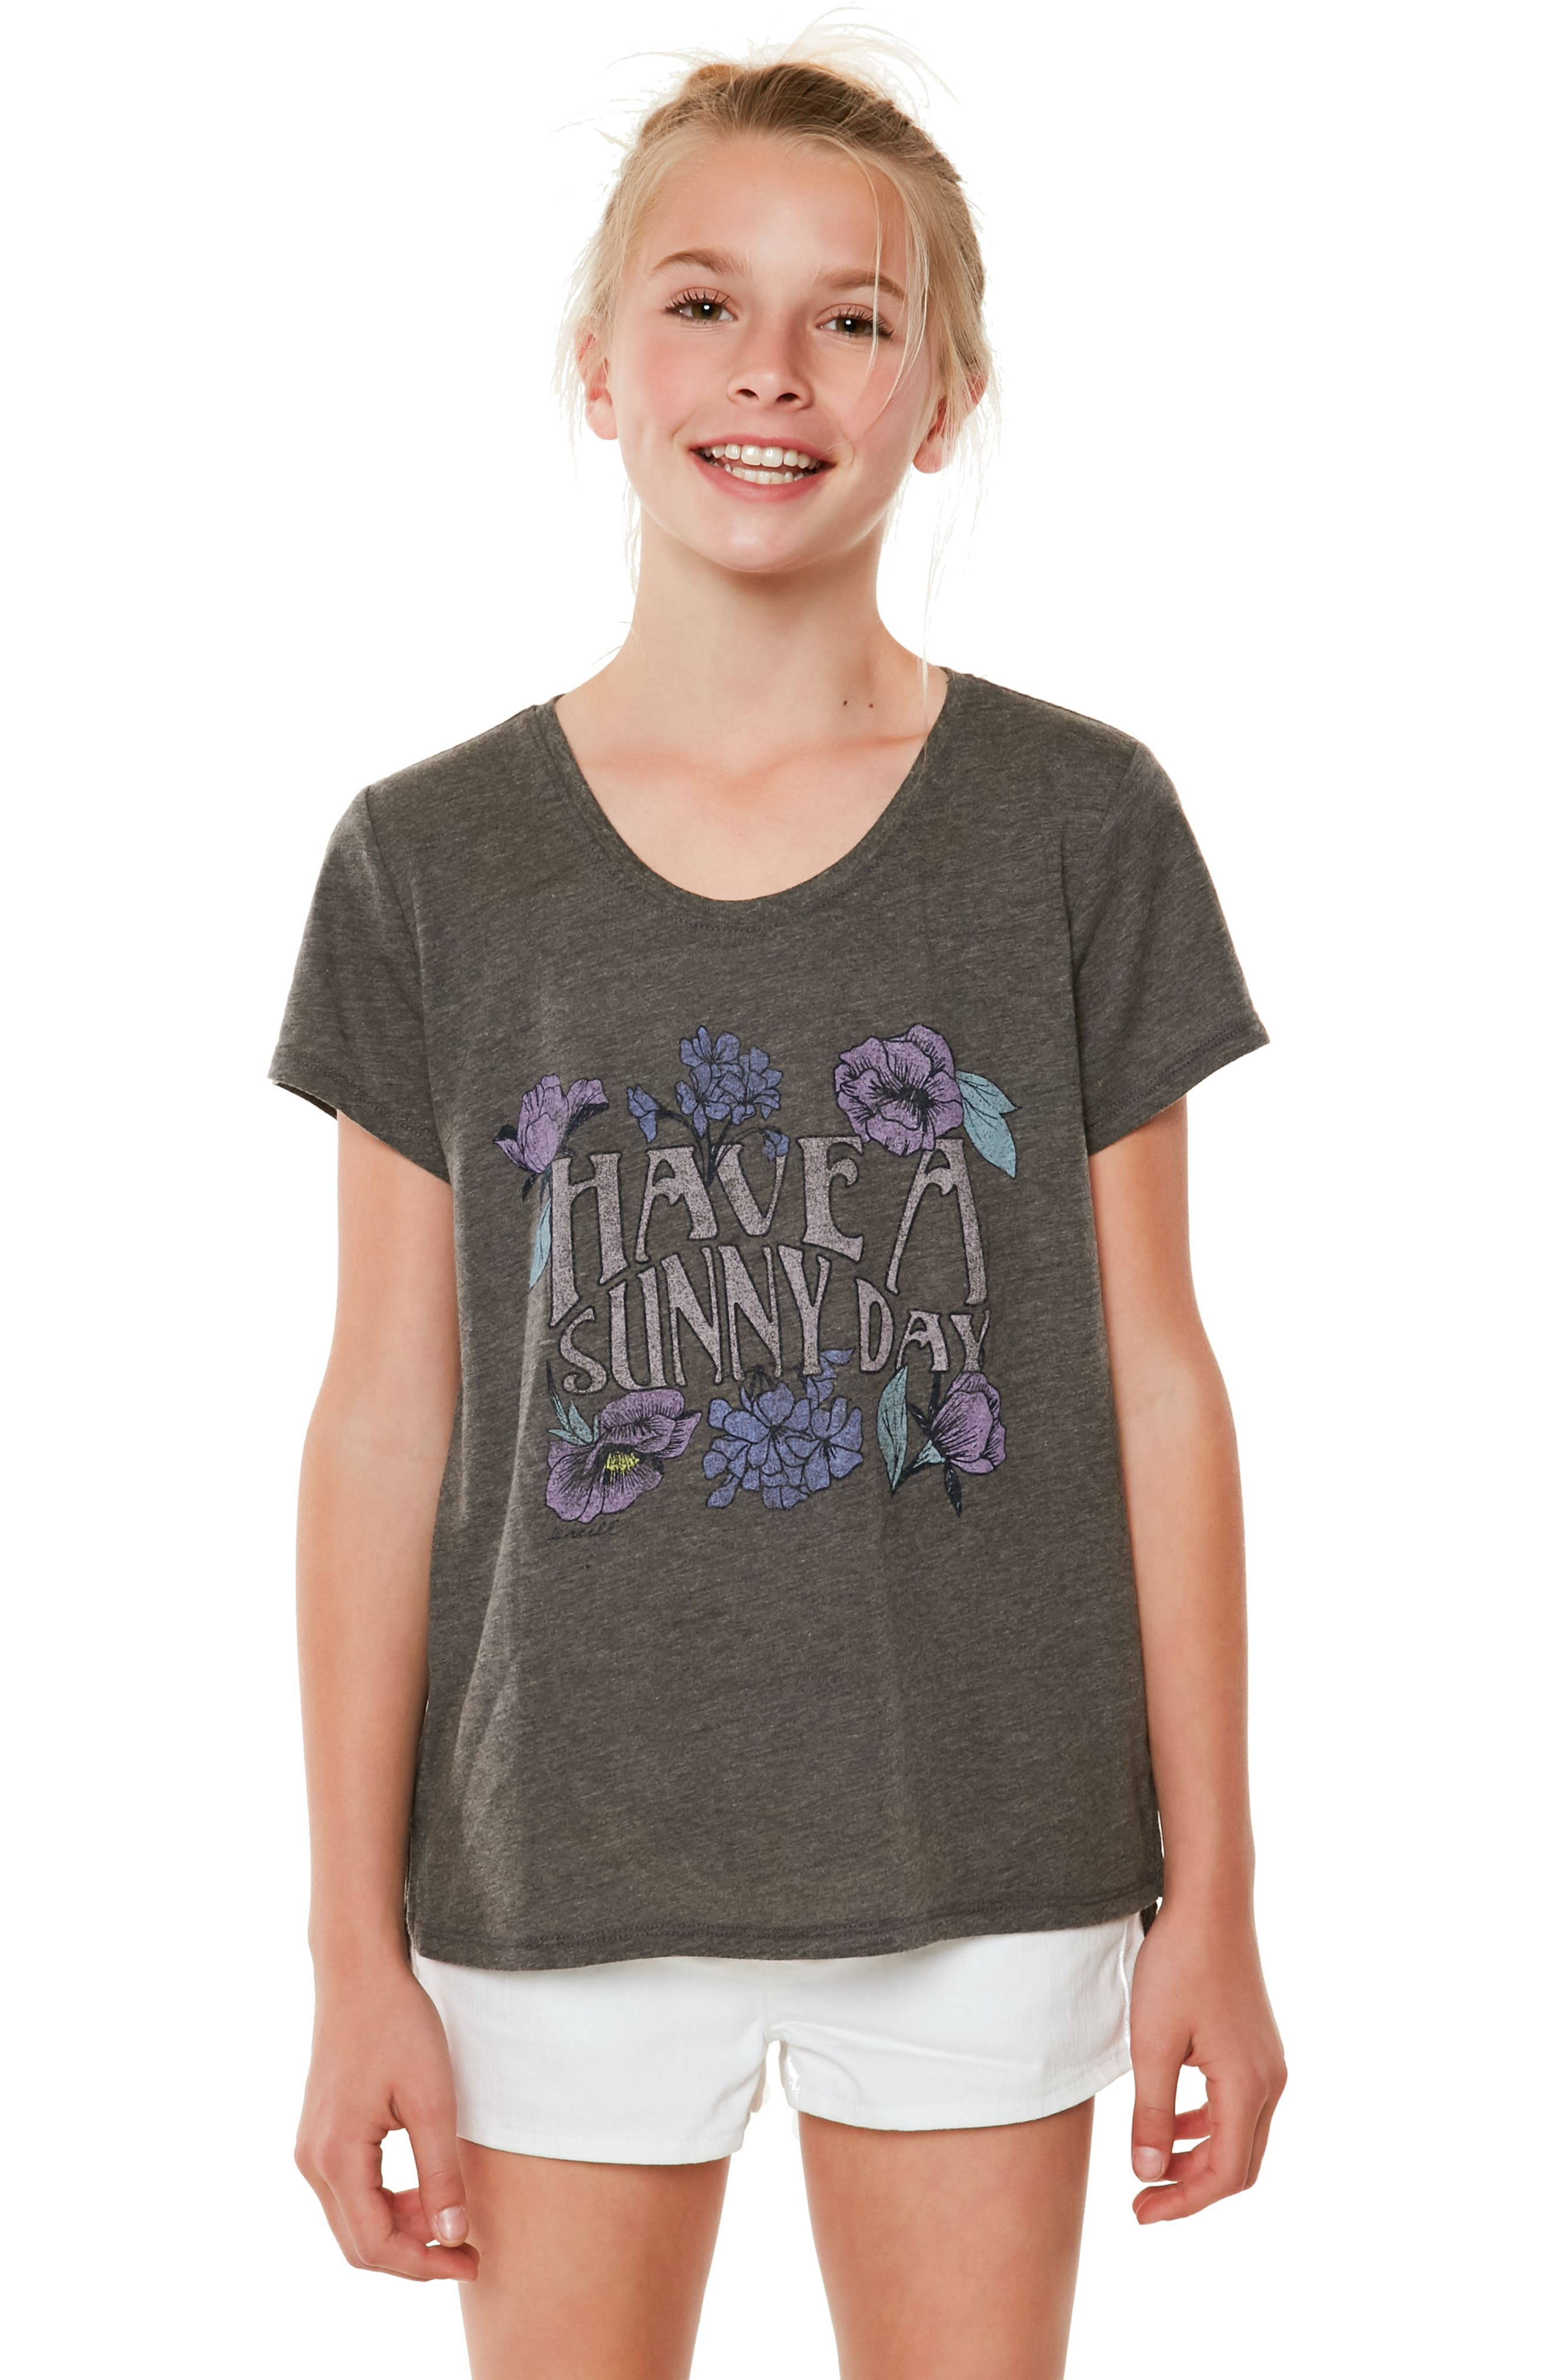 Sunny Day Graphic Tee,                         Main,                         color, Heather Grey - Hgr